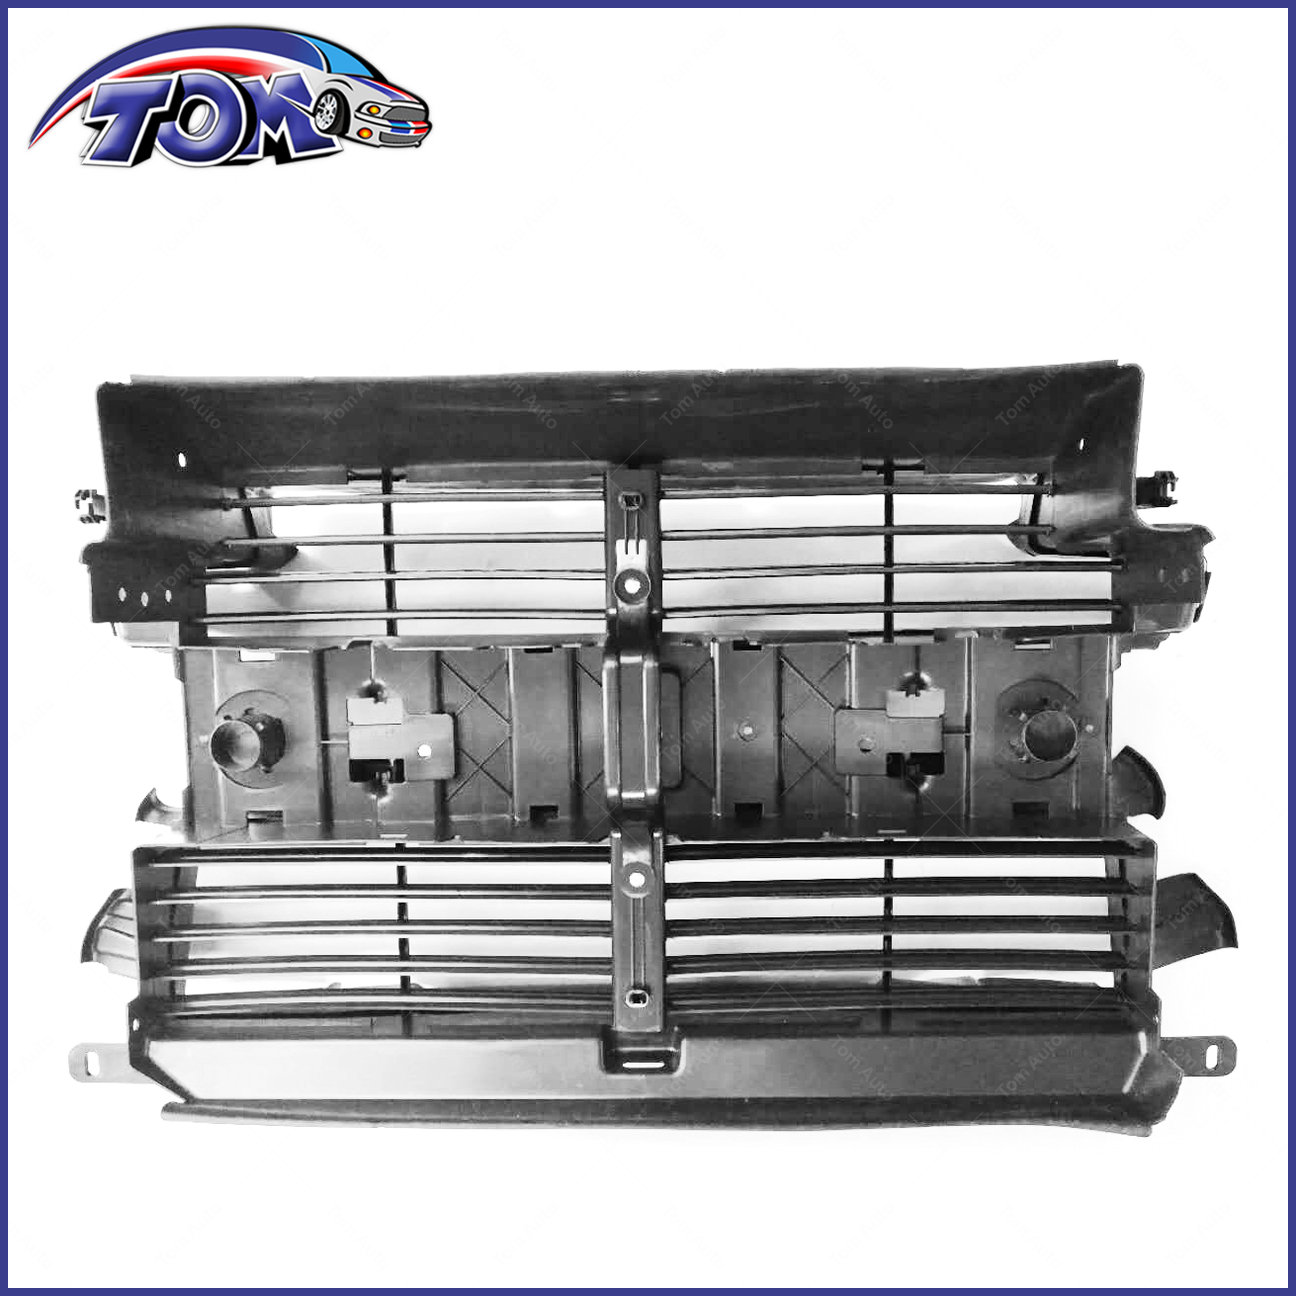 Details about New Front Radiator Control Active Grille Vent Shutter For  Ford Escape CJ5Z8475A